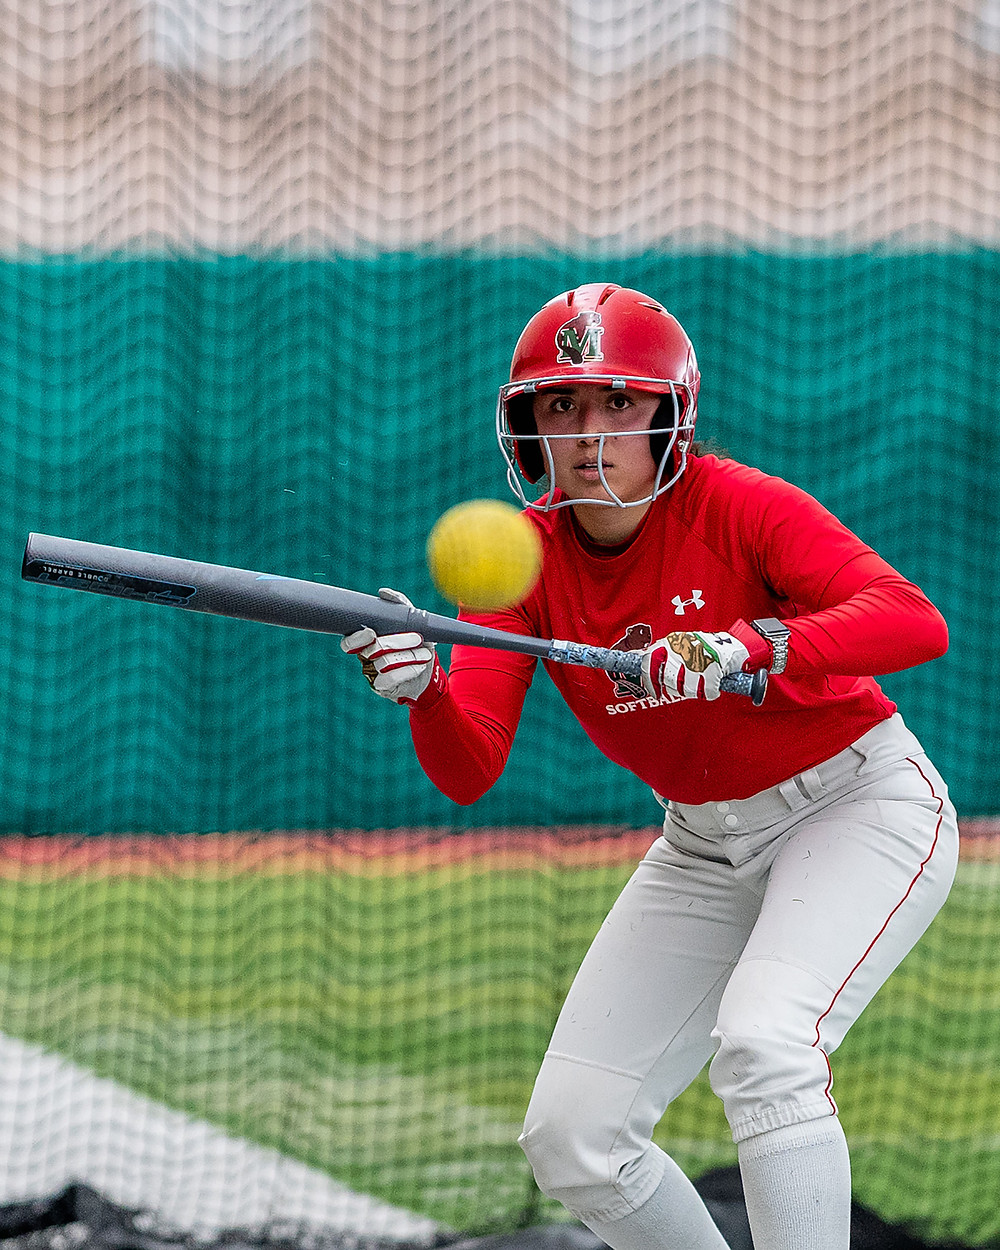 Cabral splits her time between graphic design and softball.